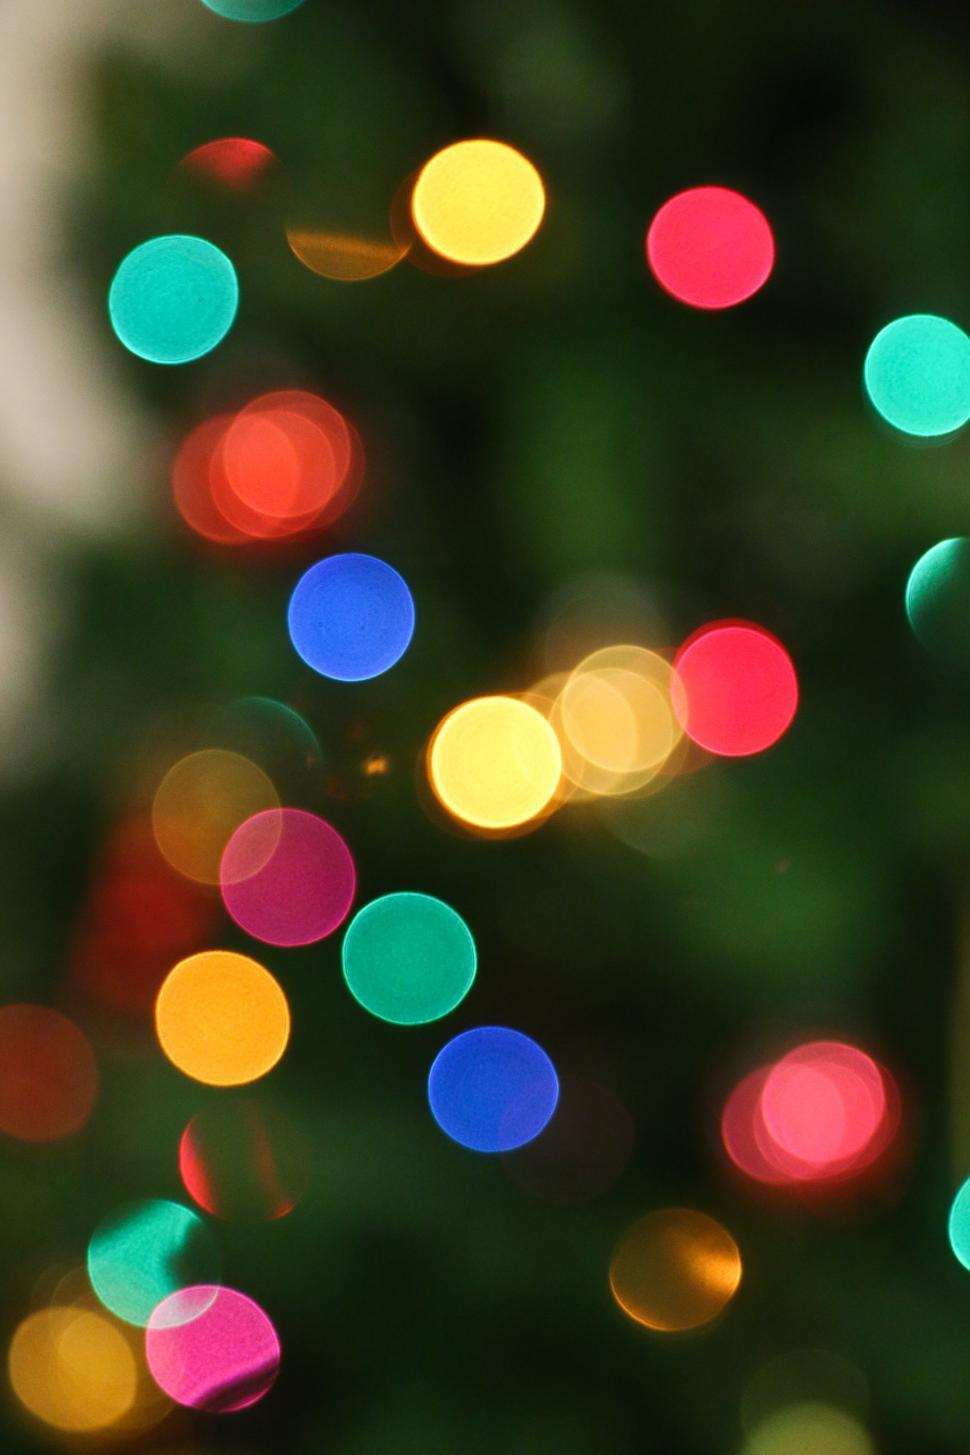 Download Free Stock Photo of Blurred Lights